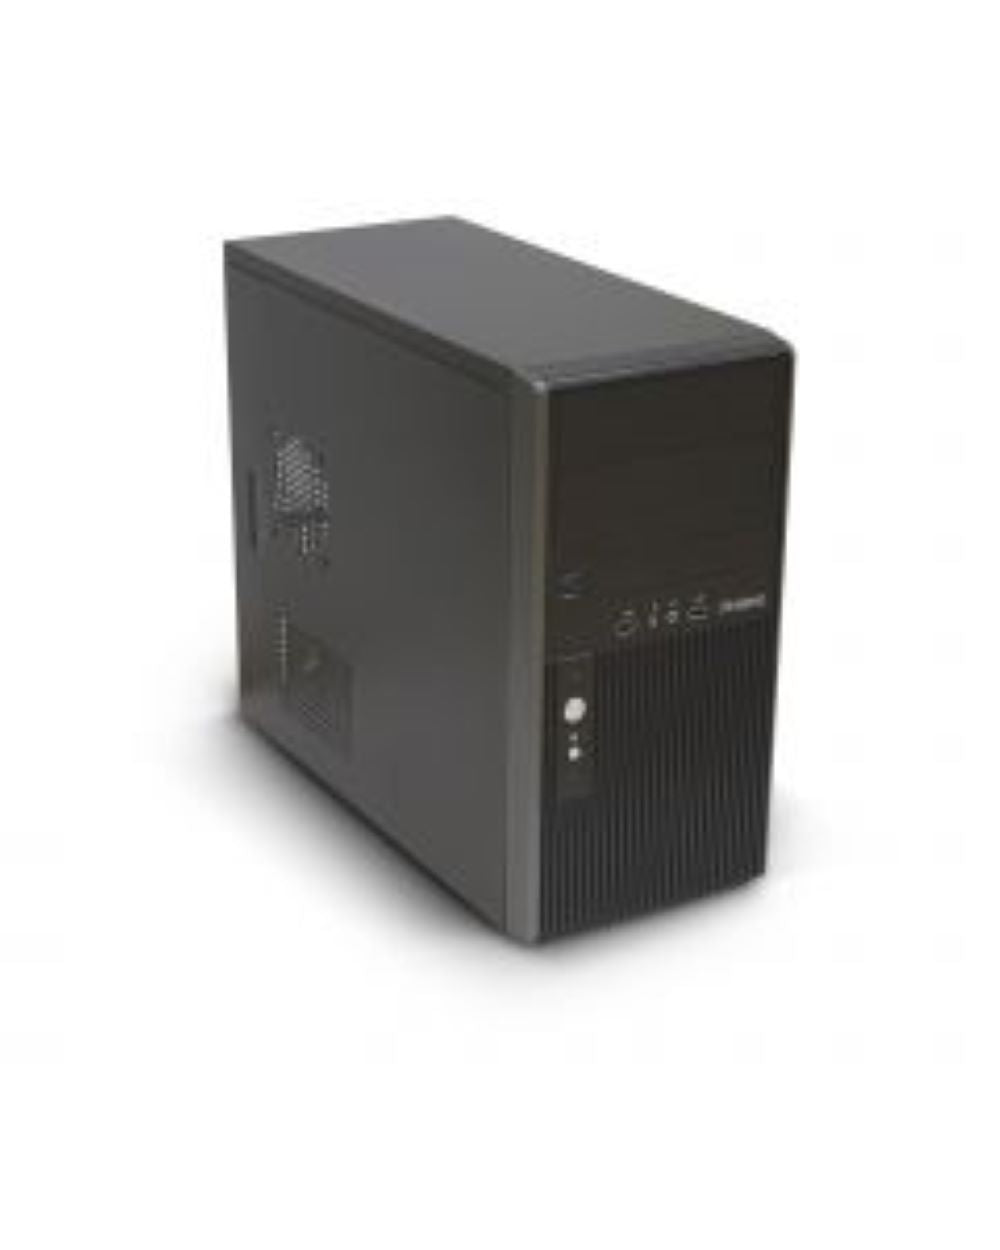 Proline Carbon Plus Micro ATX Desktop  SKU: PCC824HP